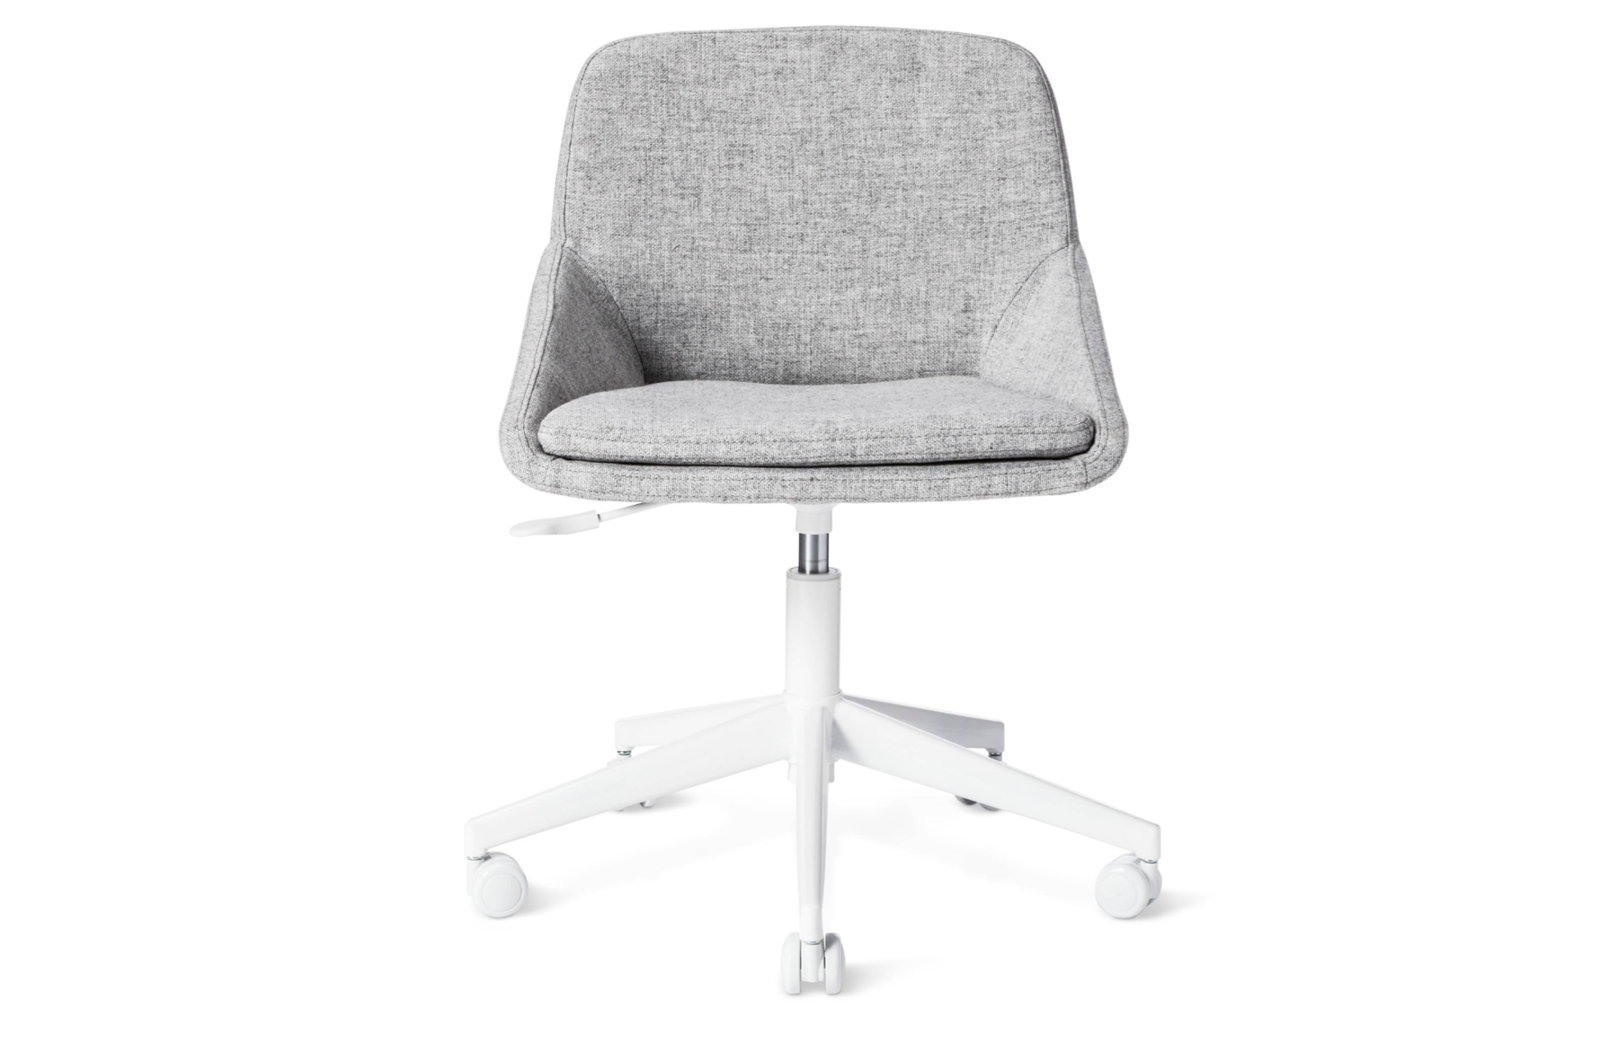 Modern By Dwell Magazine Gray Desk Chair By Dwell Grey Desk Chair Chair Rattan Dining Chairs